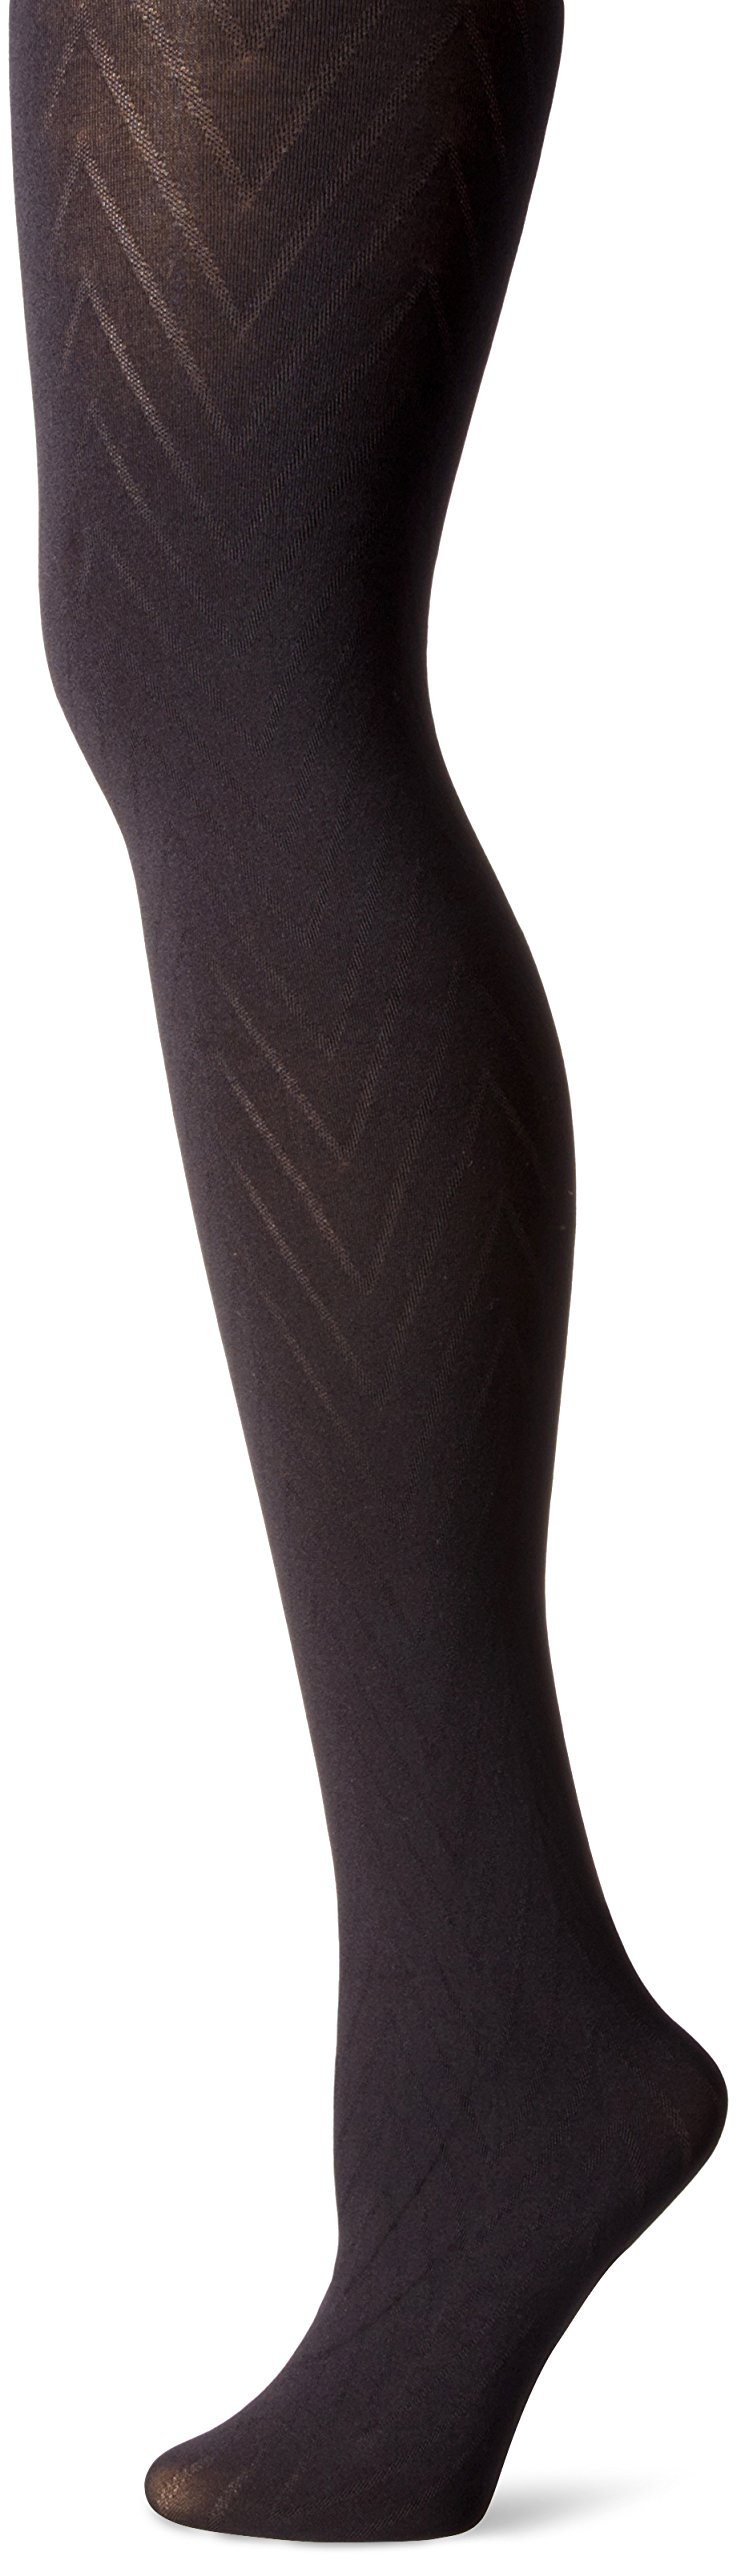 Ingrid & Isabel Women's Maternity Chevron Tights, Black, 1/2